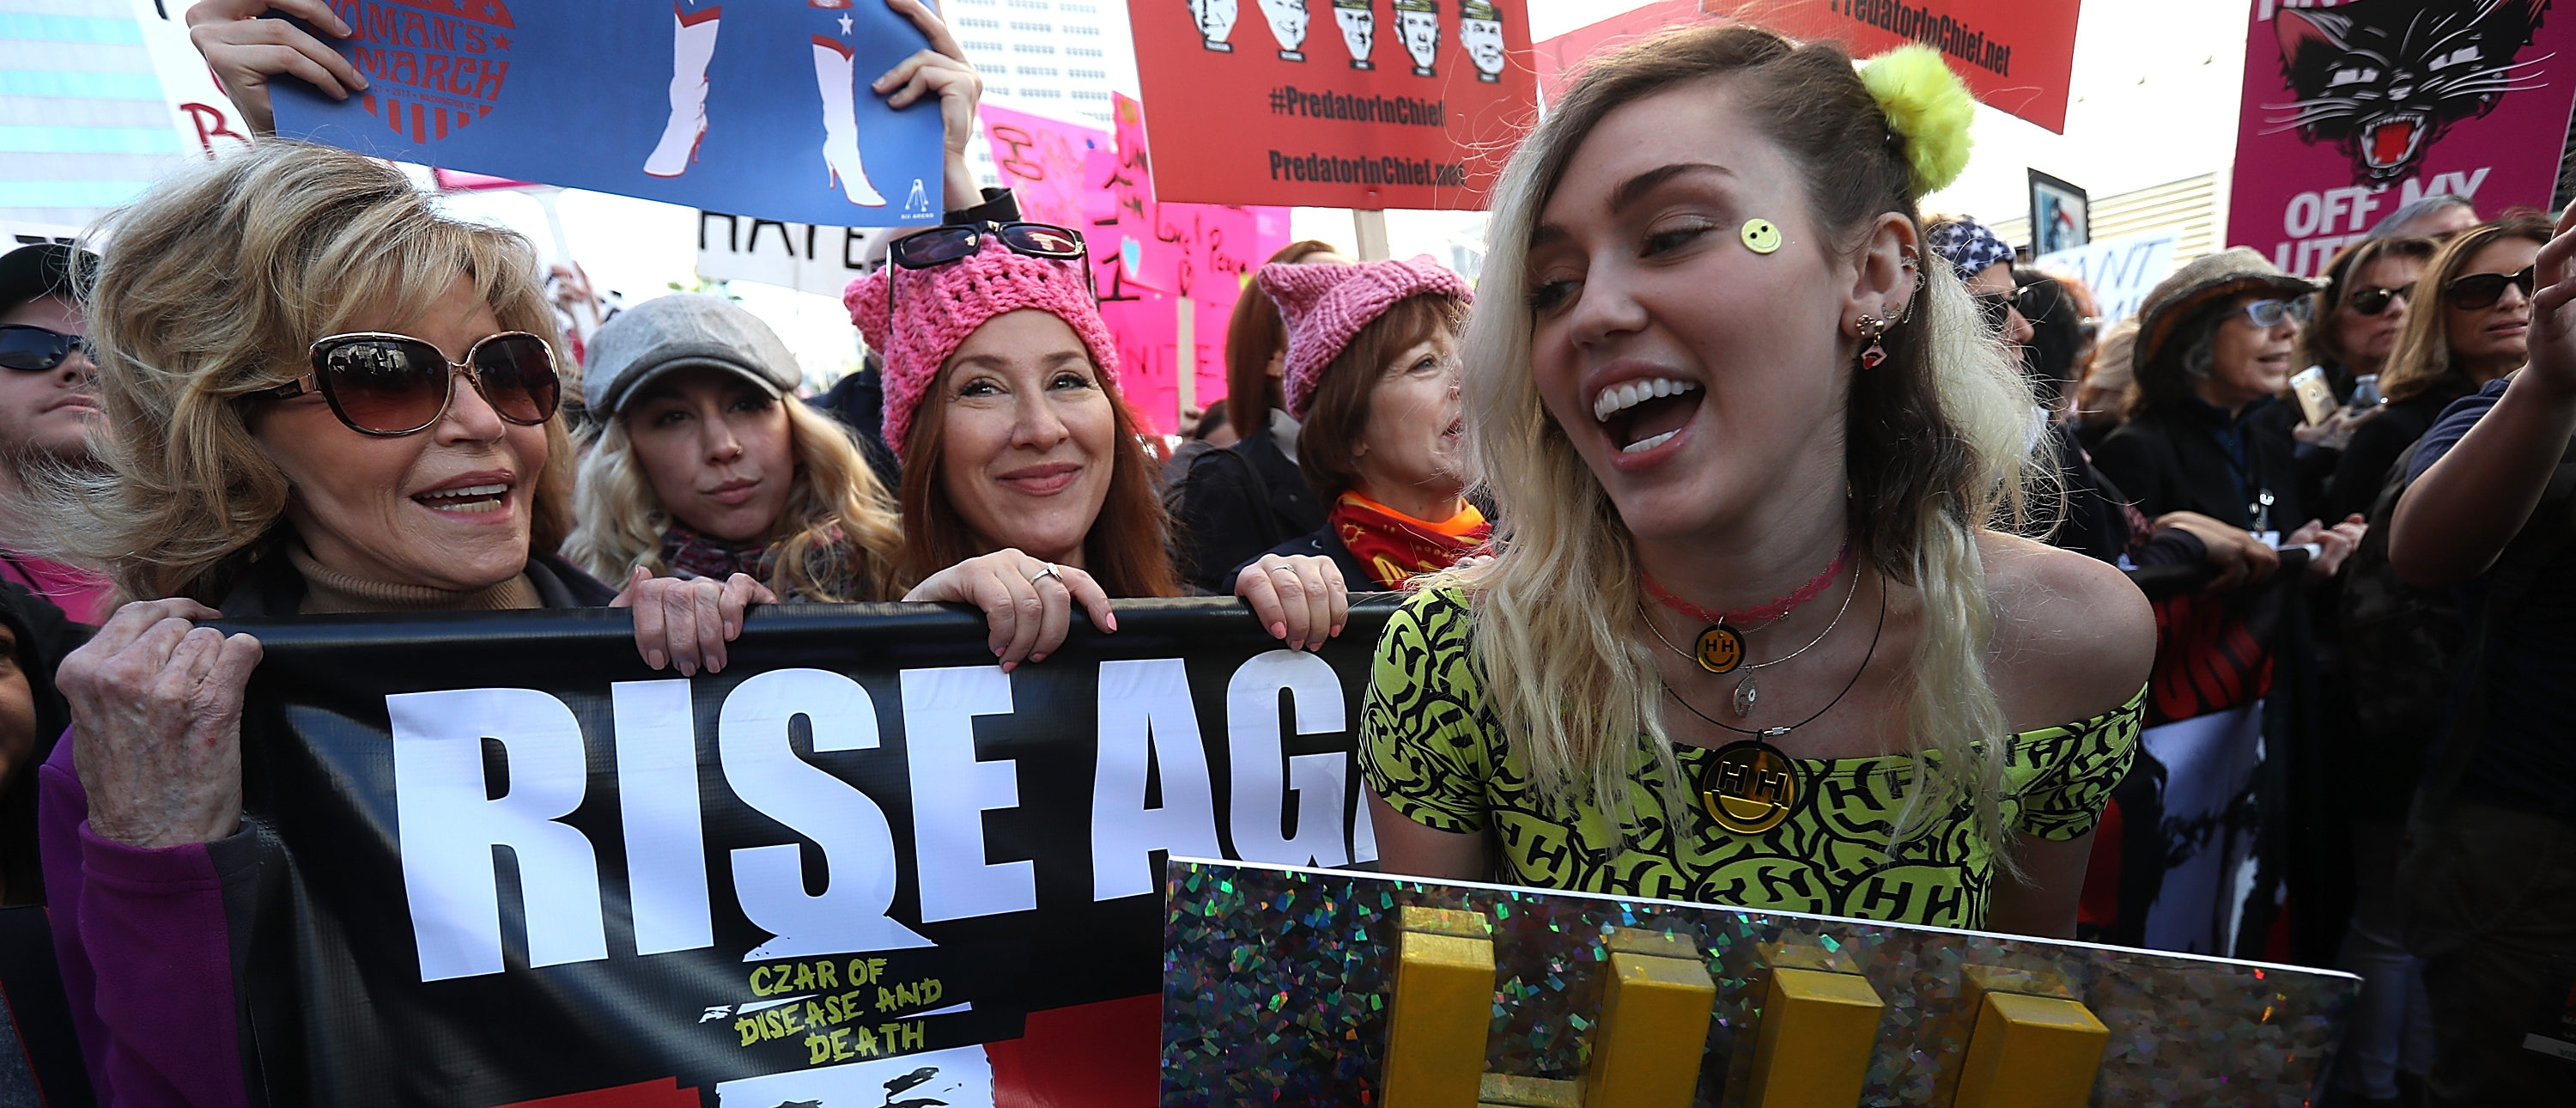 LOS ANGELES, CA - JANUARY 21: Actress Jane Fonda (L) and singer Miley Cyrus (R) march during the Women's March on January 21, 2017 in Los Angeles, California. Ten of thousands of people took to the streets of Downtown Los Angeles for the Women's March in protest after the inauguration of President Donald Trump. Women's Marches are being held in cities around the world. (Photo by Justin Sullivan/Getty Images)